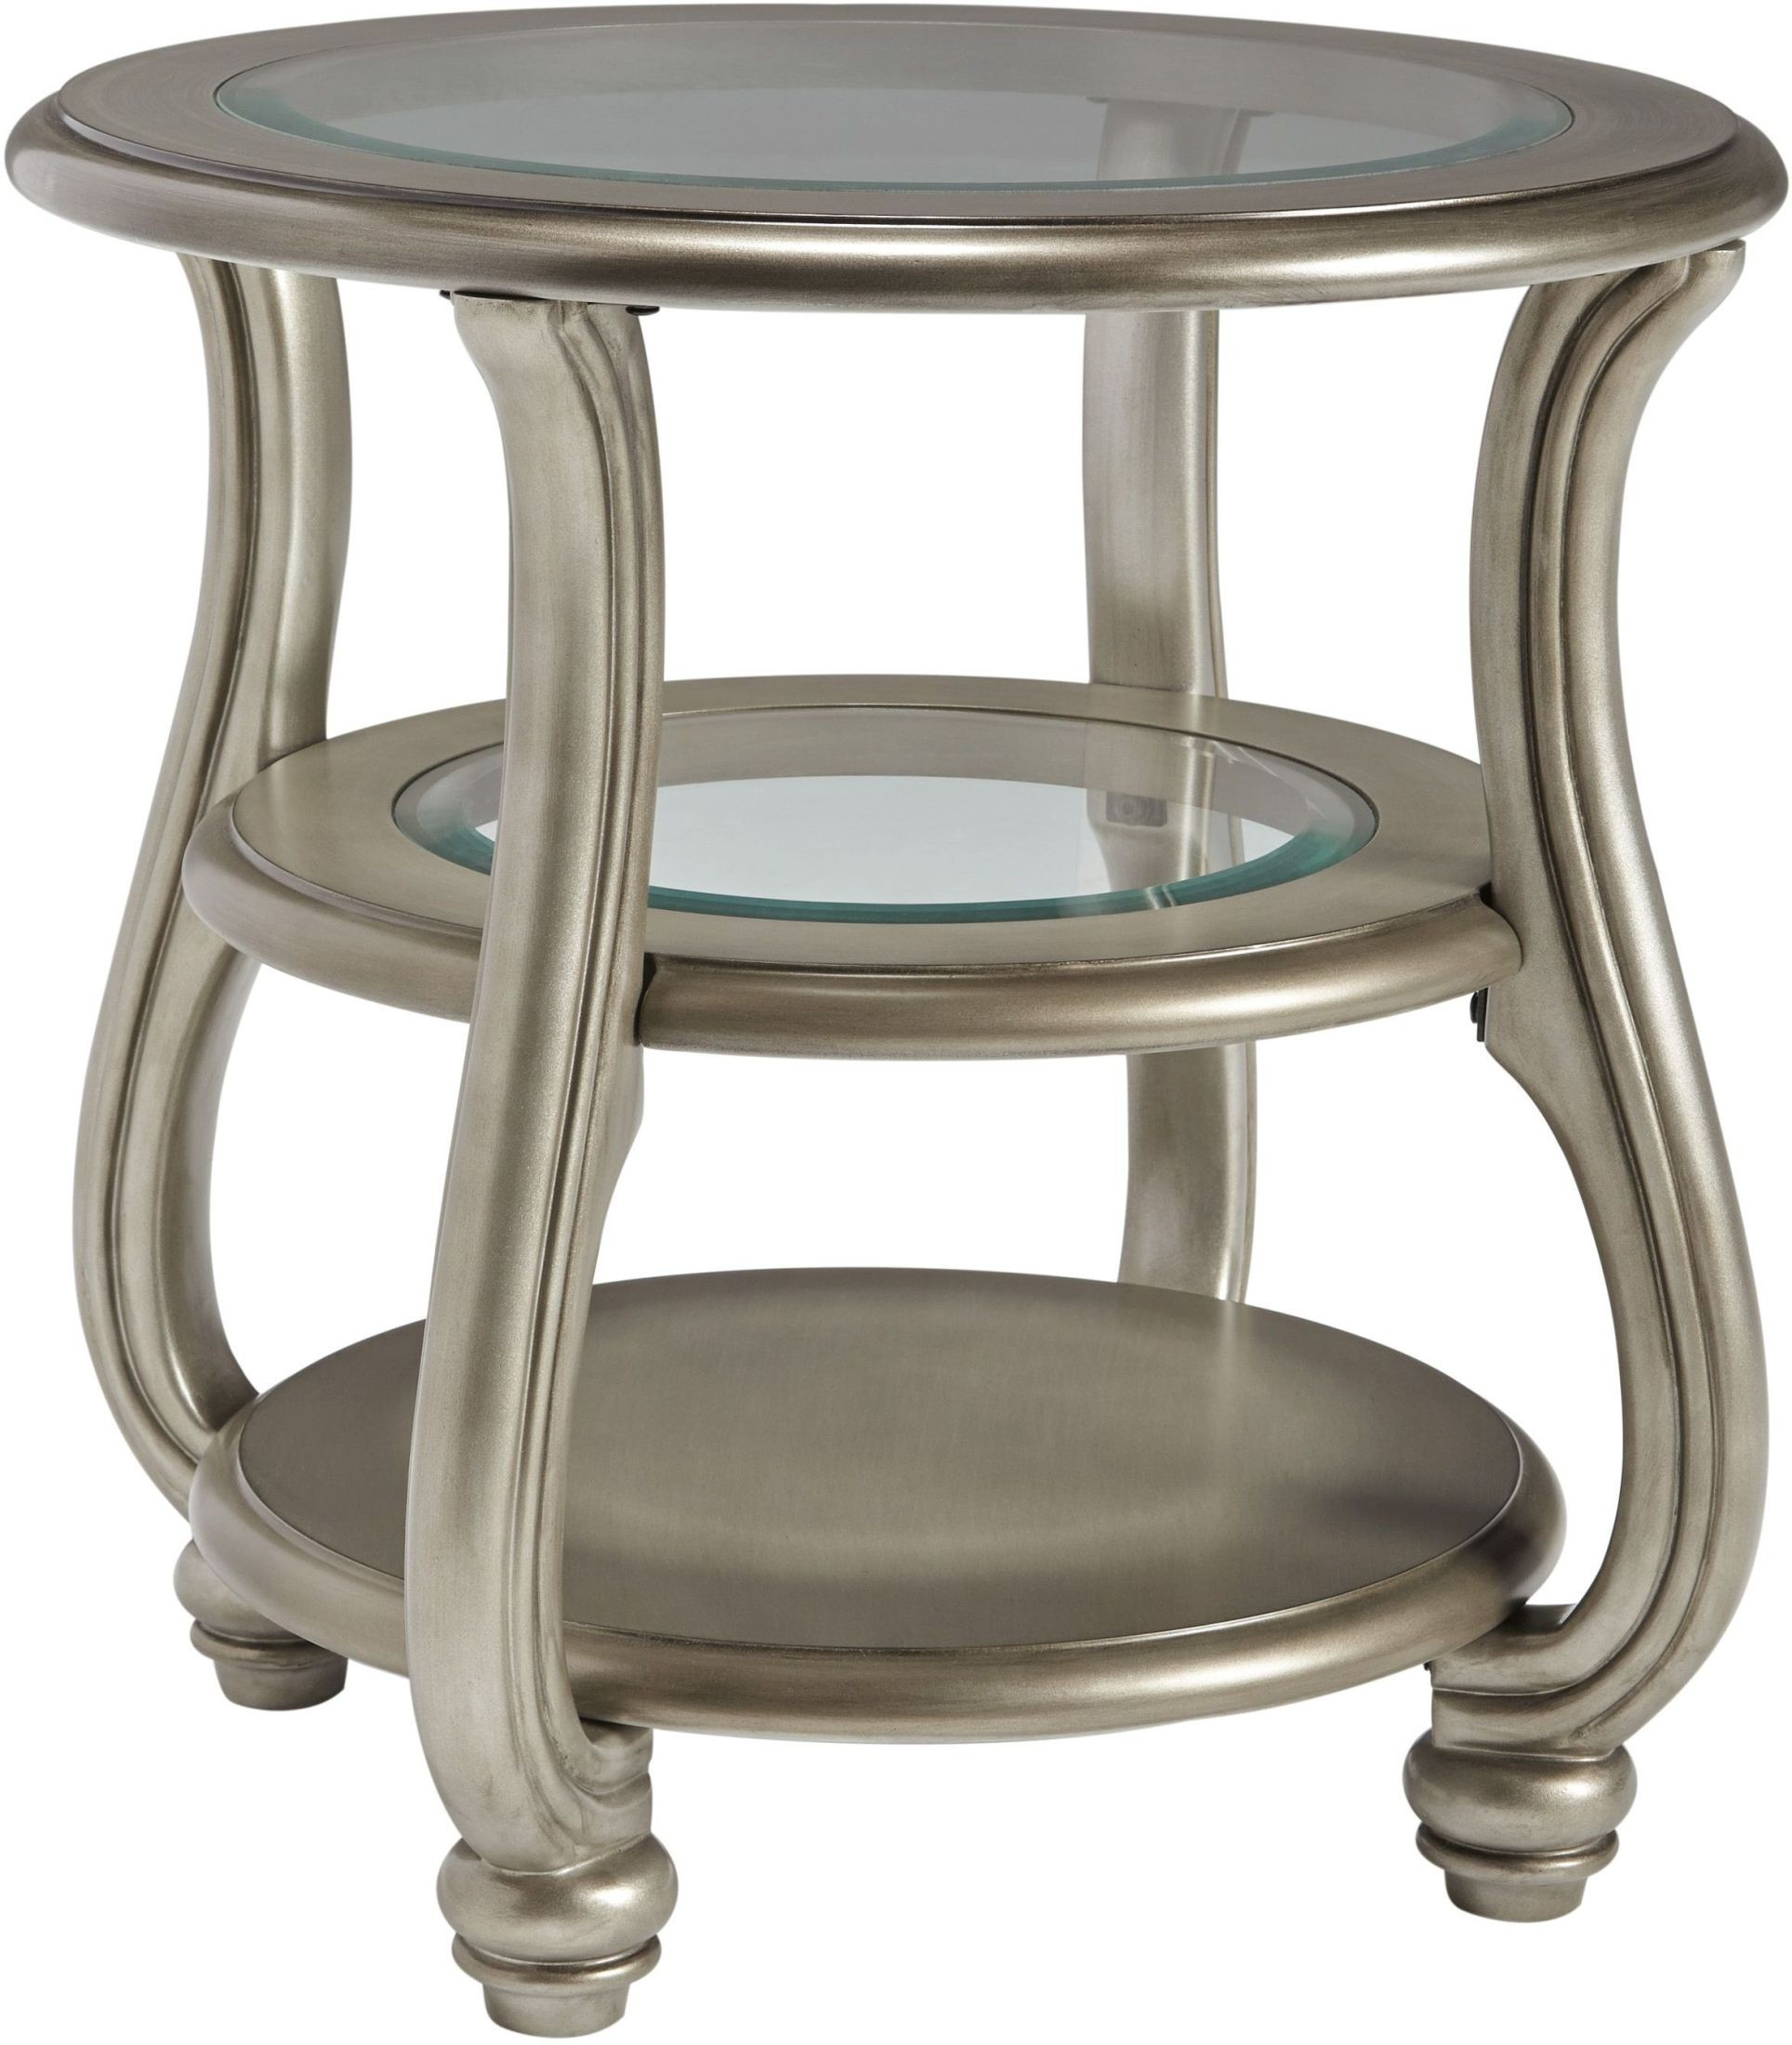 vintage furniture end width with liberty alamosa table threshold height relaxed top item products round trim metal tables